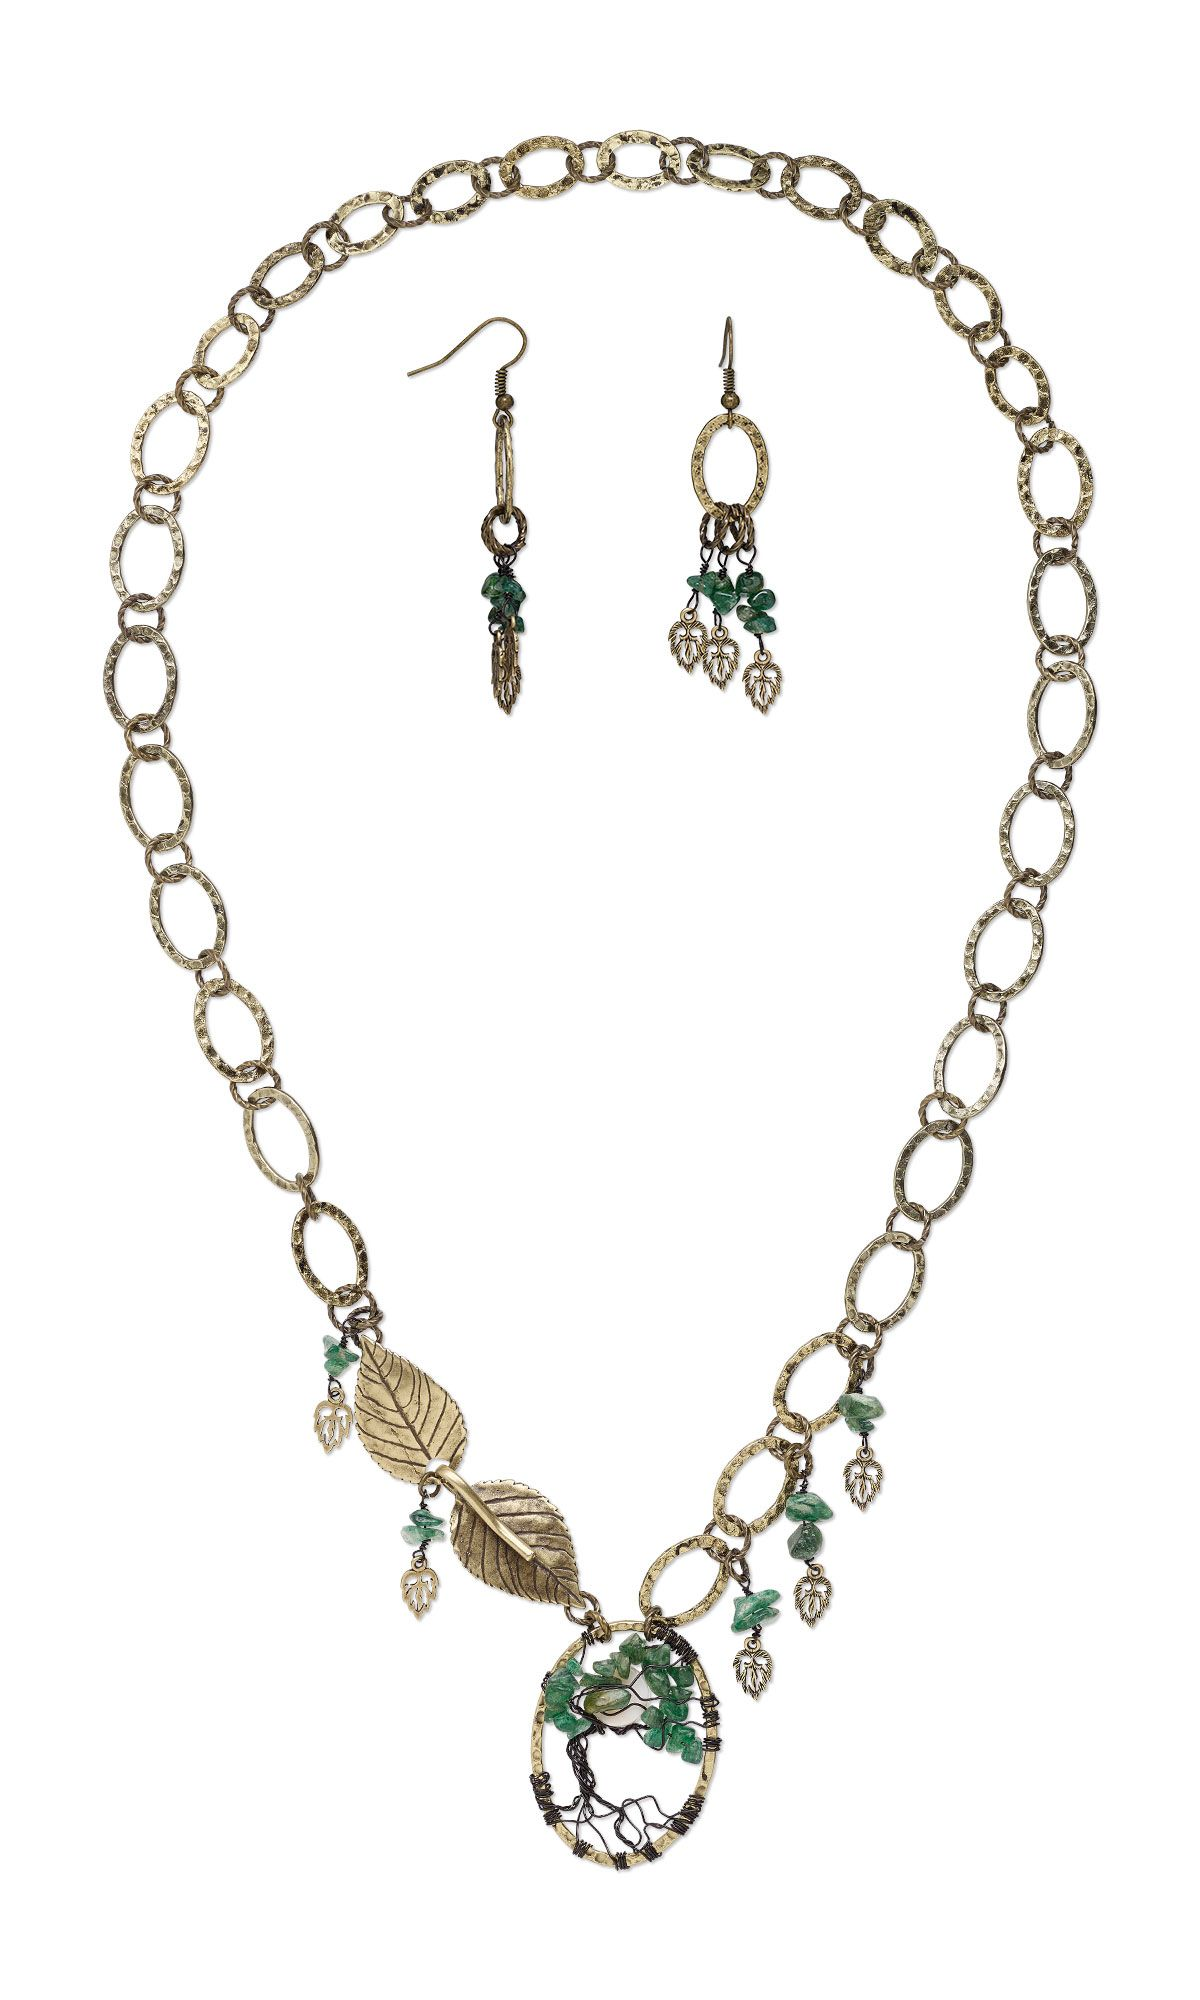 Jewelry Design - Single-Strand Necklace and Earring Set with Green ...